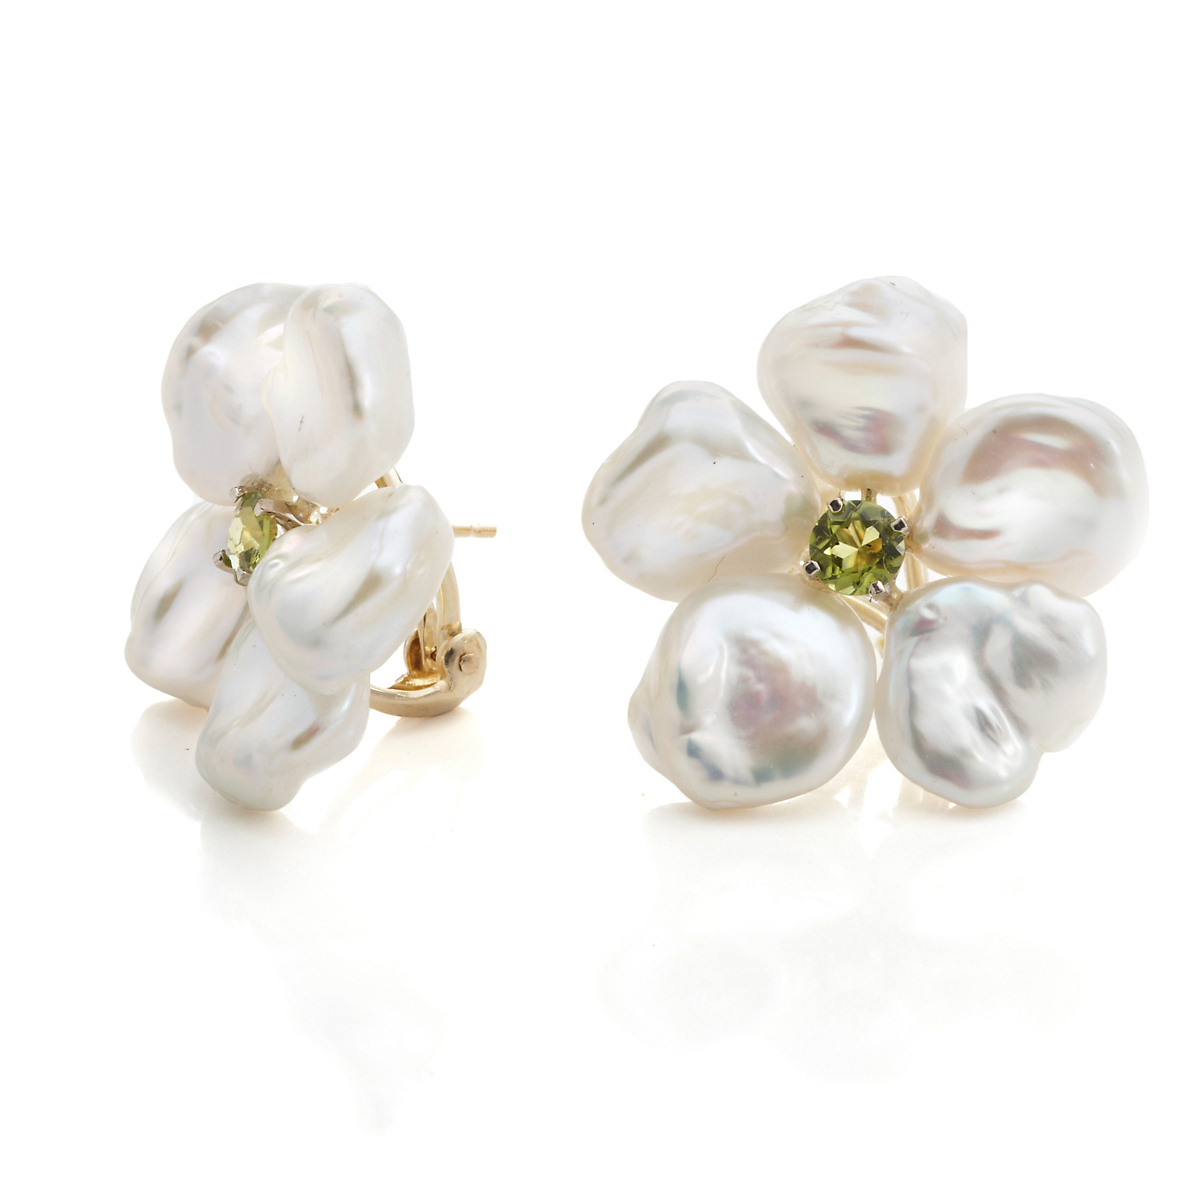 Russell Trusso Petal Pearl & Peridot Flower Earrings